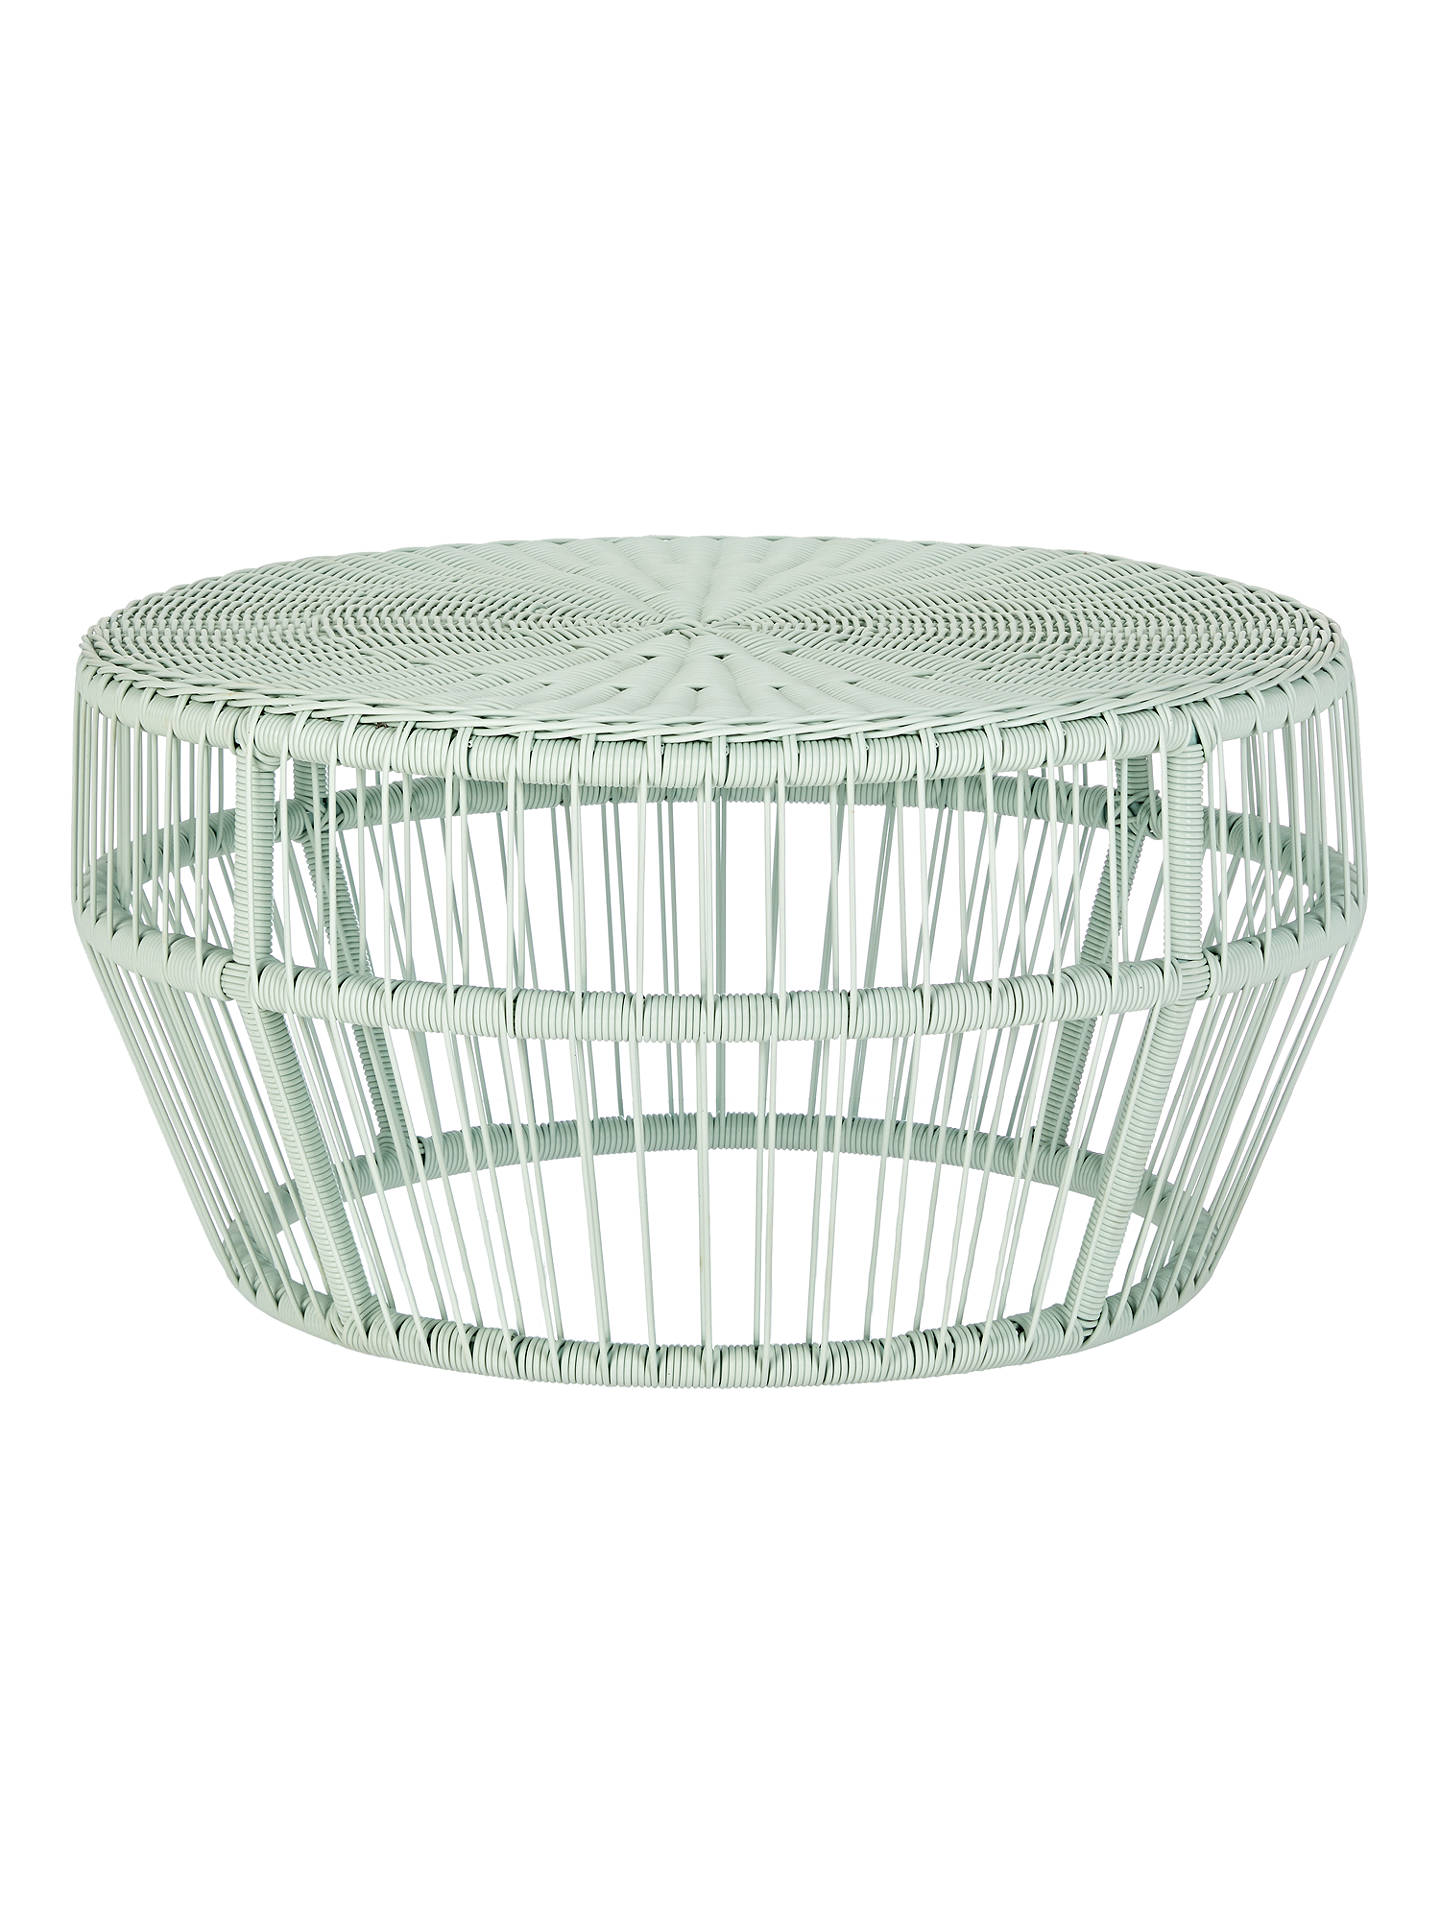 BuyHouse by John Lewis Salsa Garden Coffee Table, Dia.80cm, Mint Online at johnlewis.com